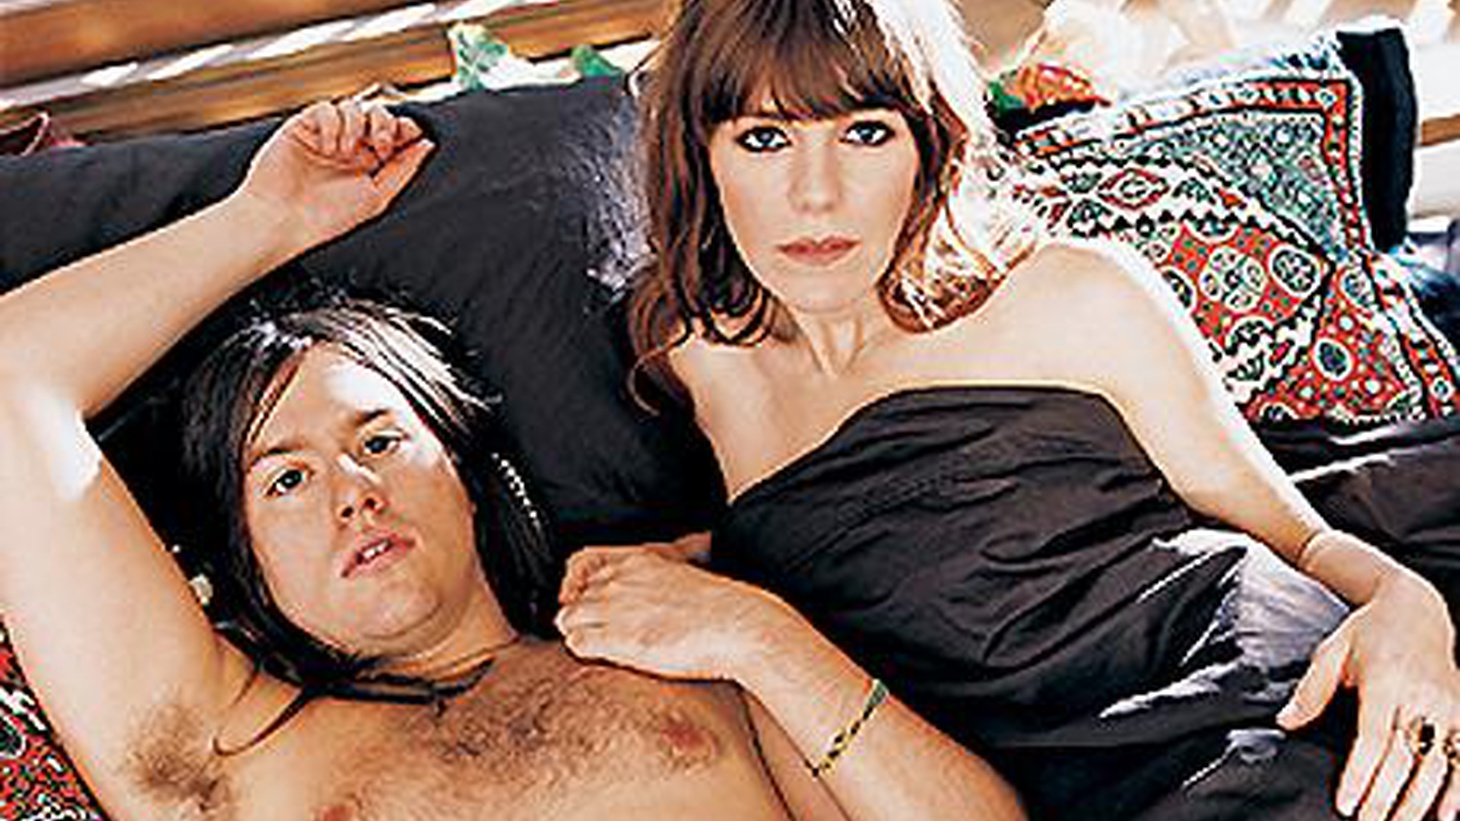 """Jenny Lewis (Rilo Kiley) and Johnathan Rice are a powerful couple – musically and romantically. They're both gifted songwriters and have finally collaborated on a project simply called Jenny & Johnny. Their debut features them playing just about every instrument and singing close harmonies. Today's Top Tune is """"Just Like Zeus."""""""